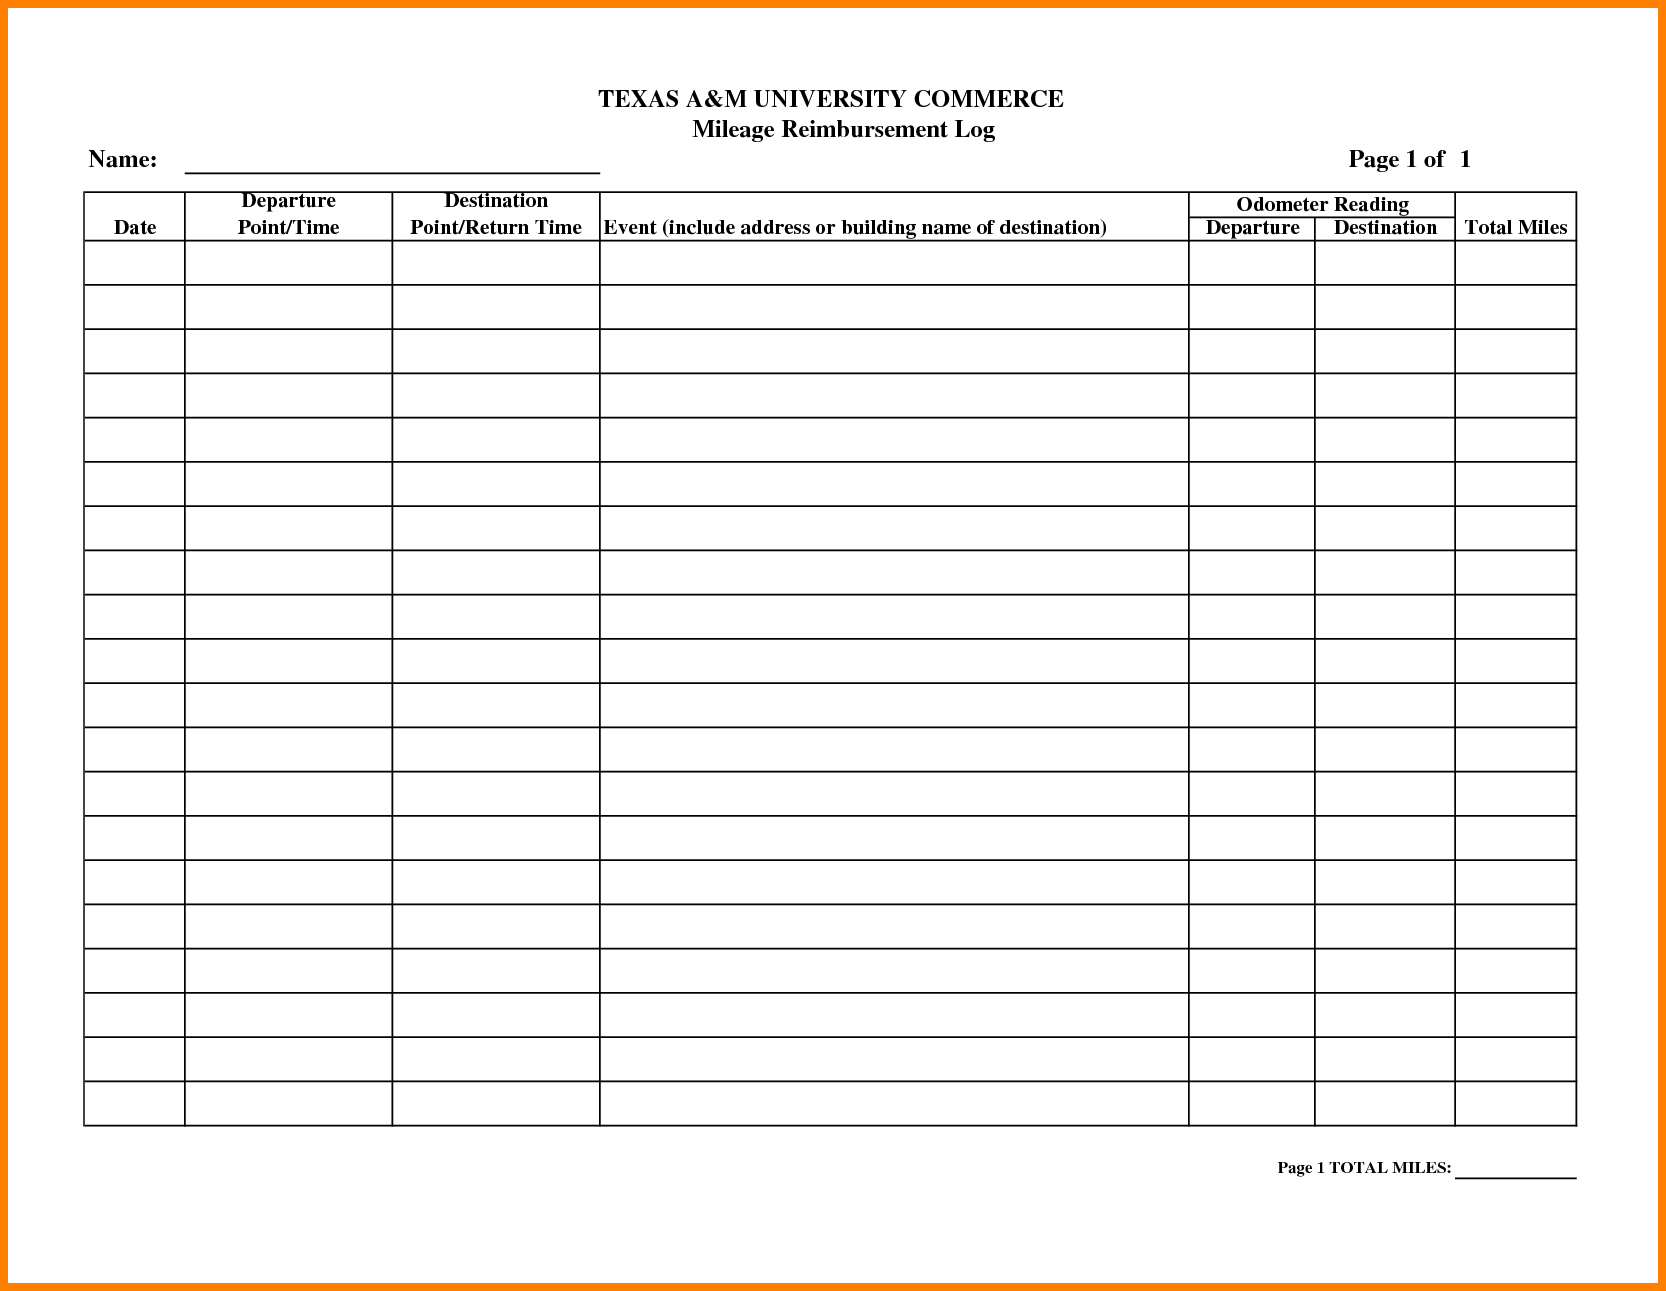 mileage reimbursement form   Boat.jeremyeaton.co